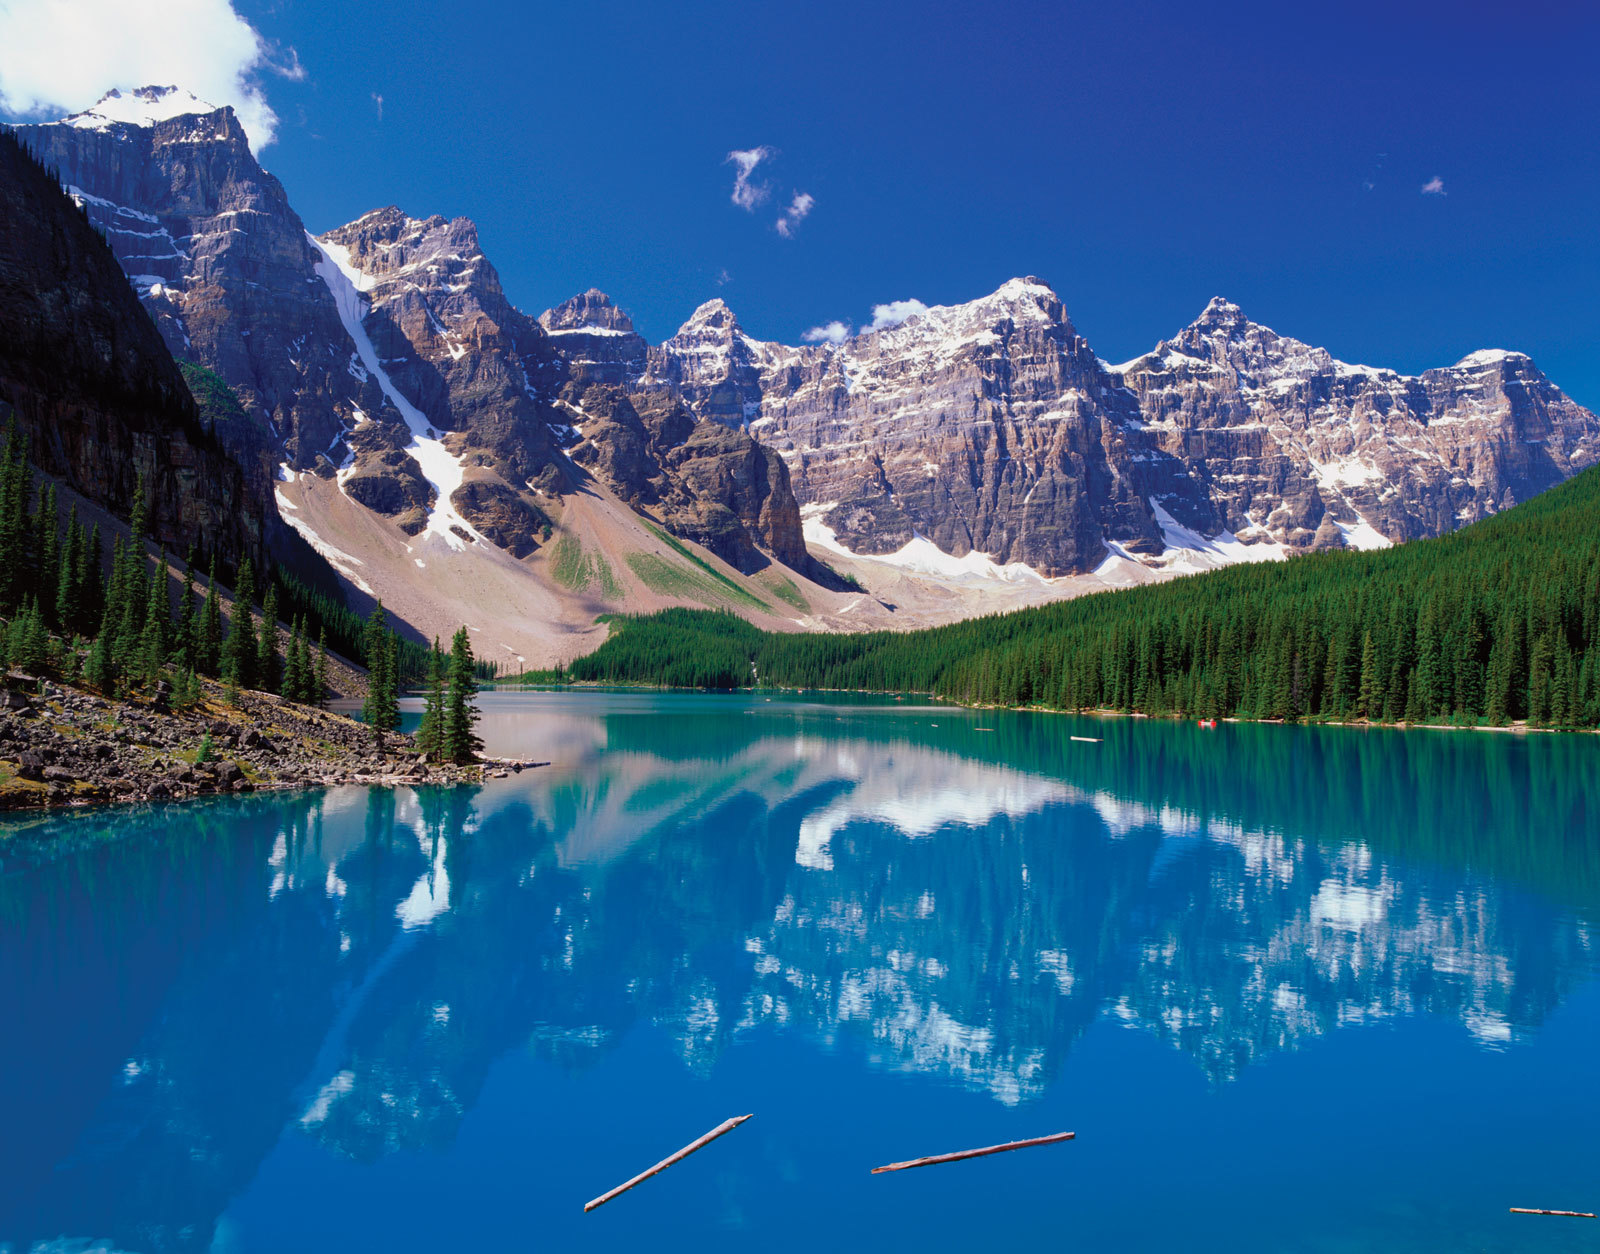 14160 Screensavers and Wallpapers Lakes for phone. Download Landscape, Mountains, Lakes pictures for free